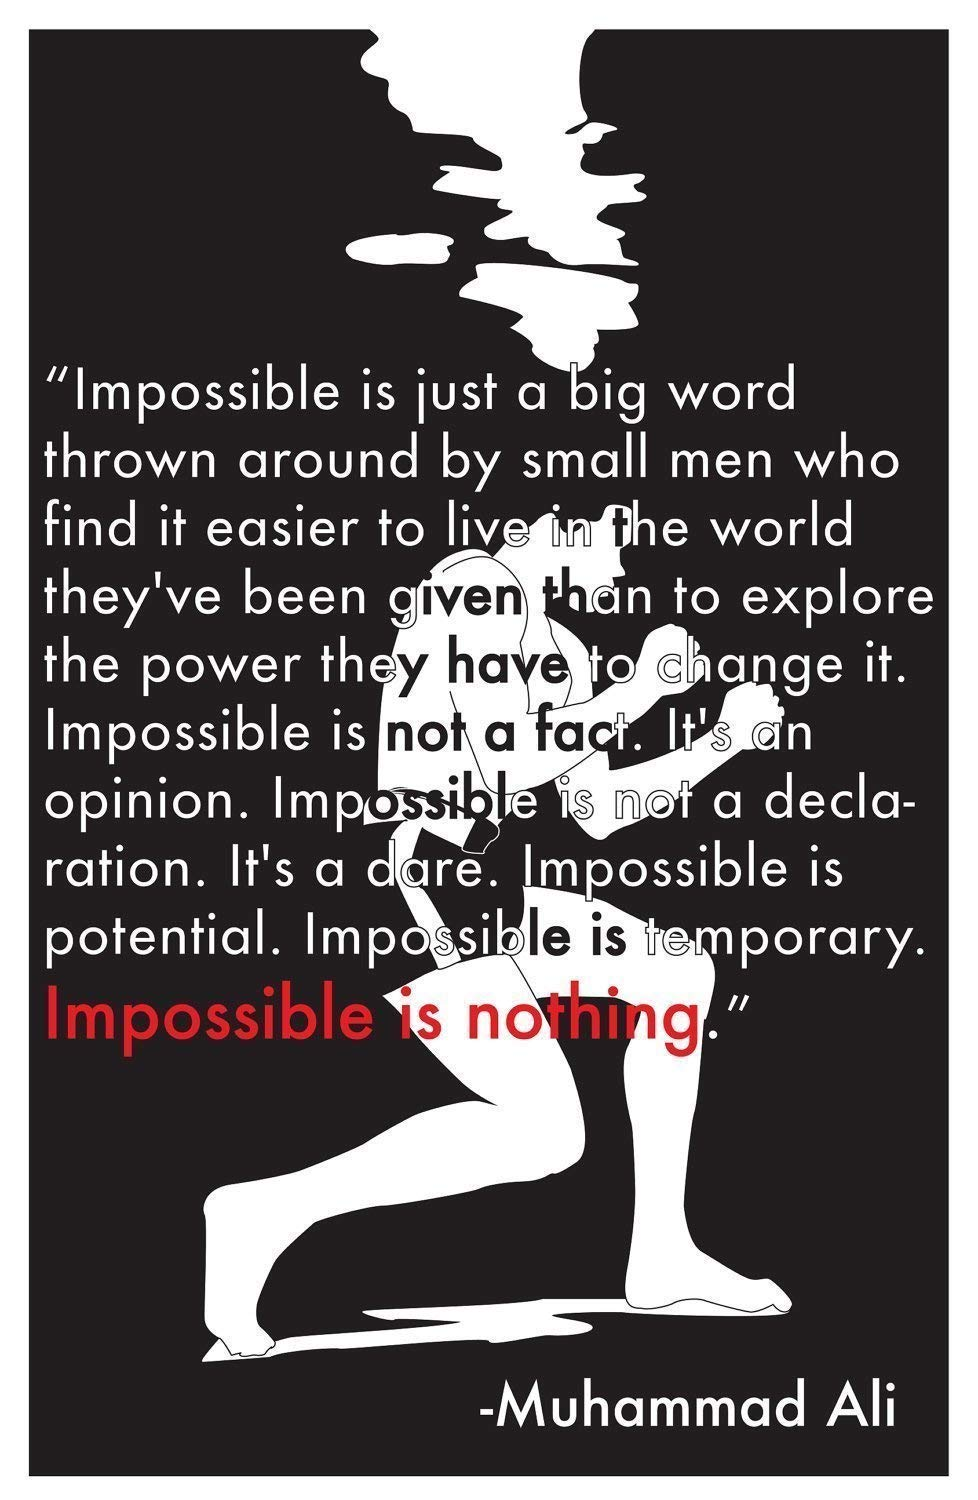 muhammad ali impossible is nothing poster